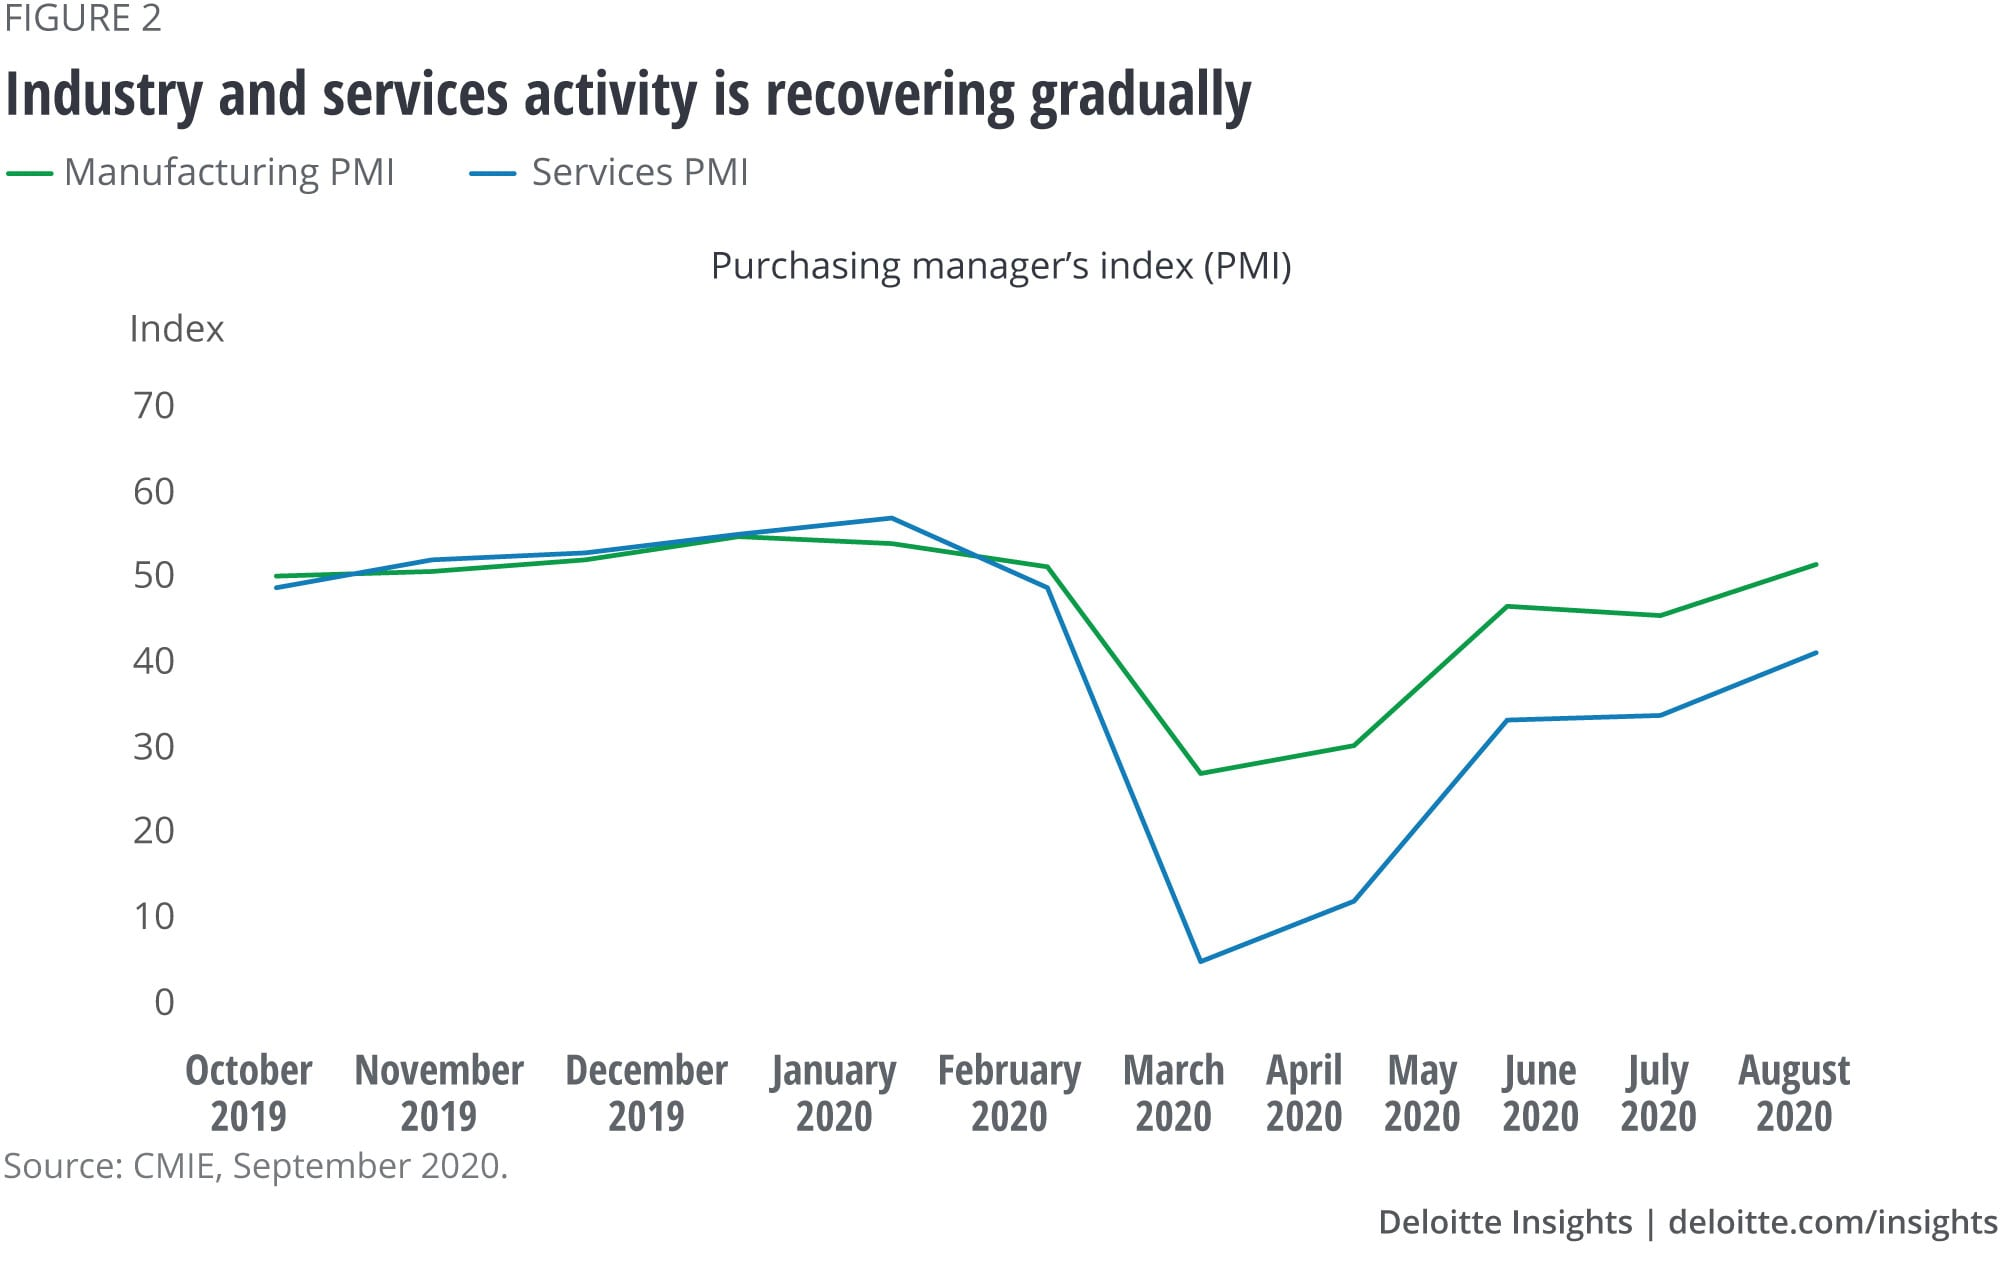 Industry and services activity is recovering gradually